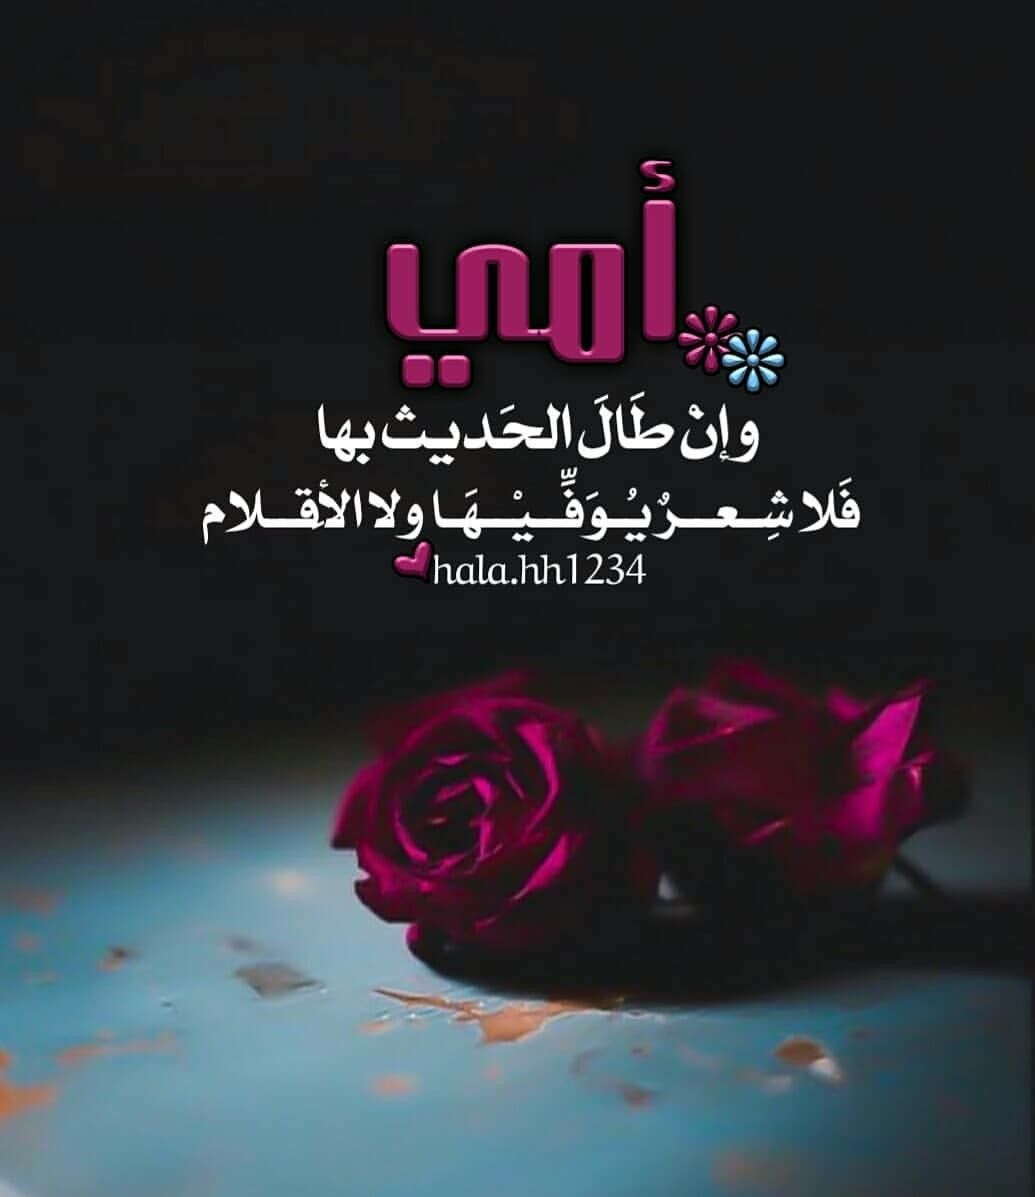 Pin By Manal M On عائلتي Arabian Art Arabic Quotes Love You